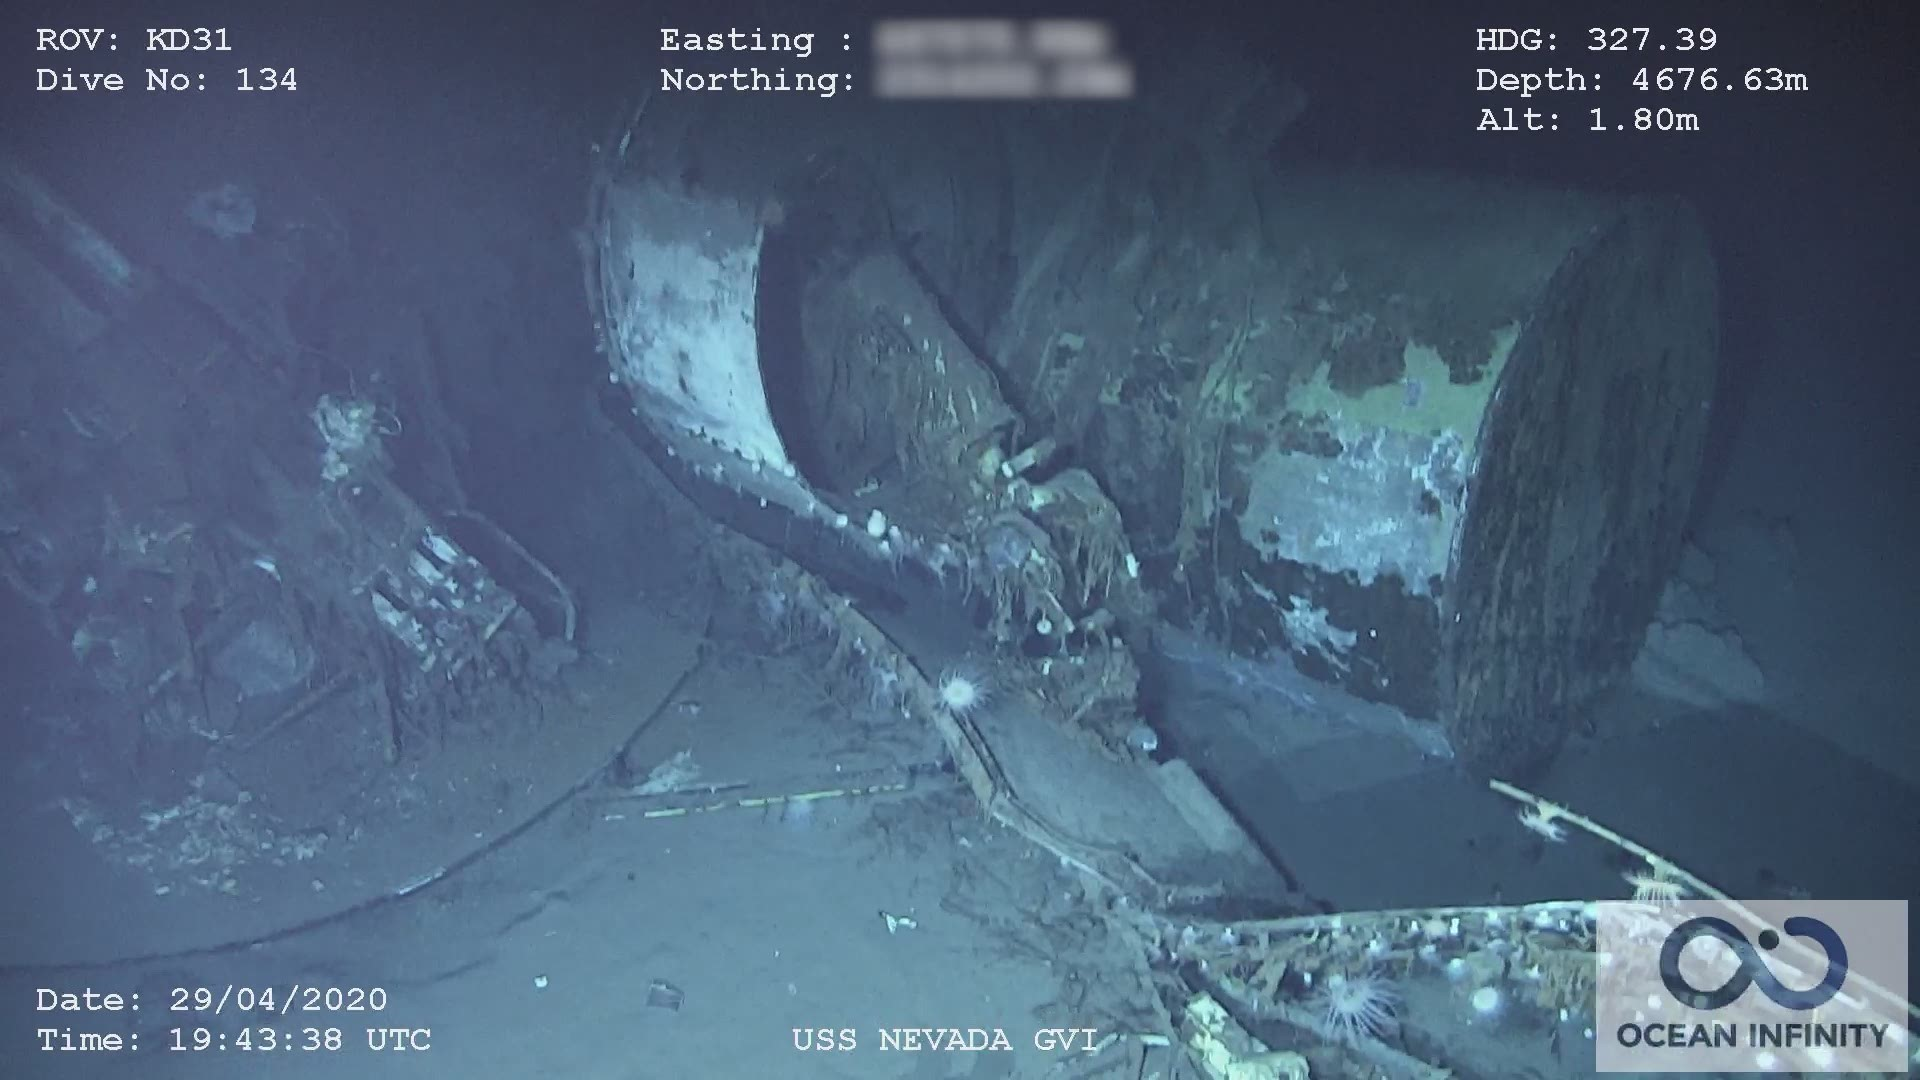 Uss Nevada That Survived Pearl Harbor And Wwi Found In Pacific Wkyc Com